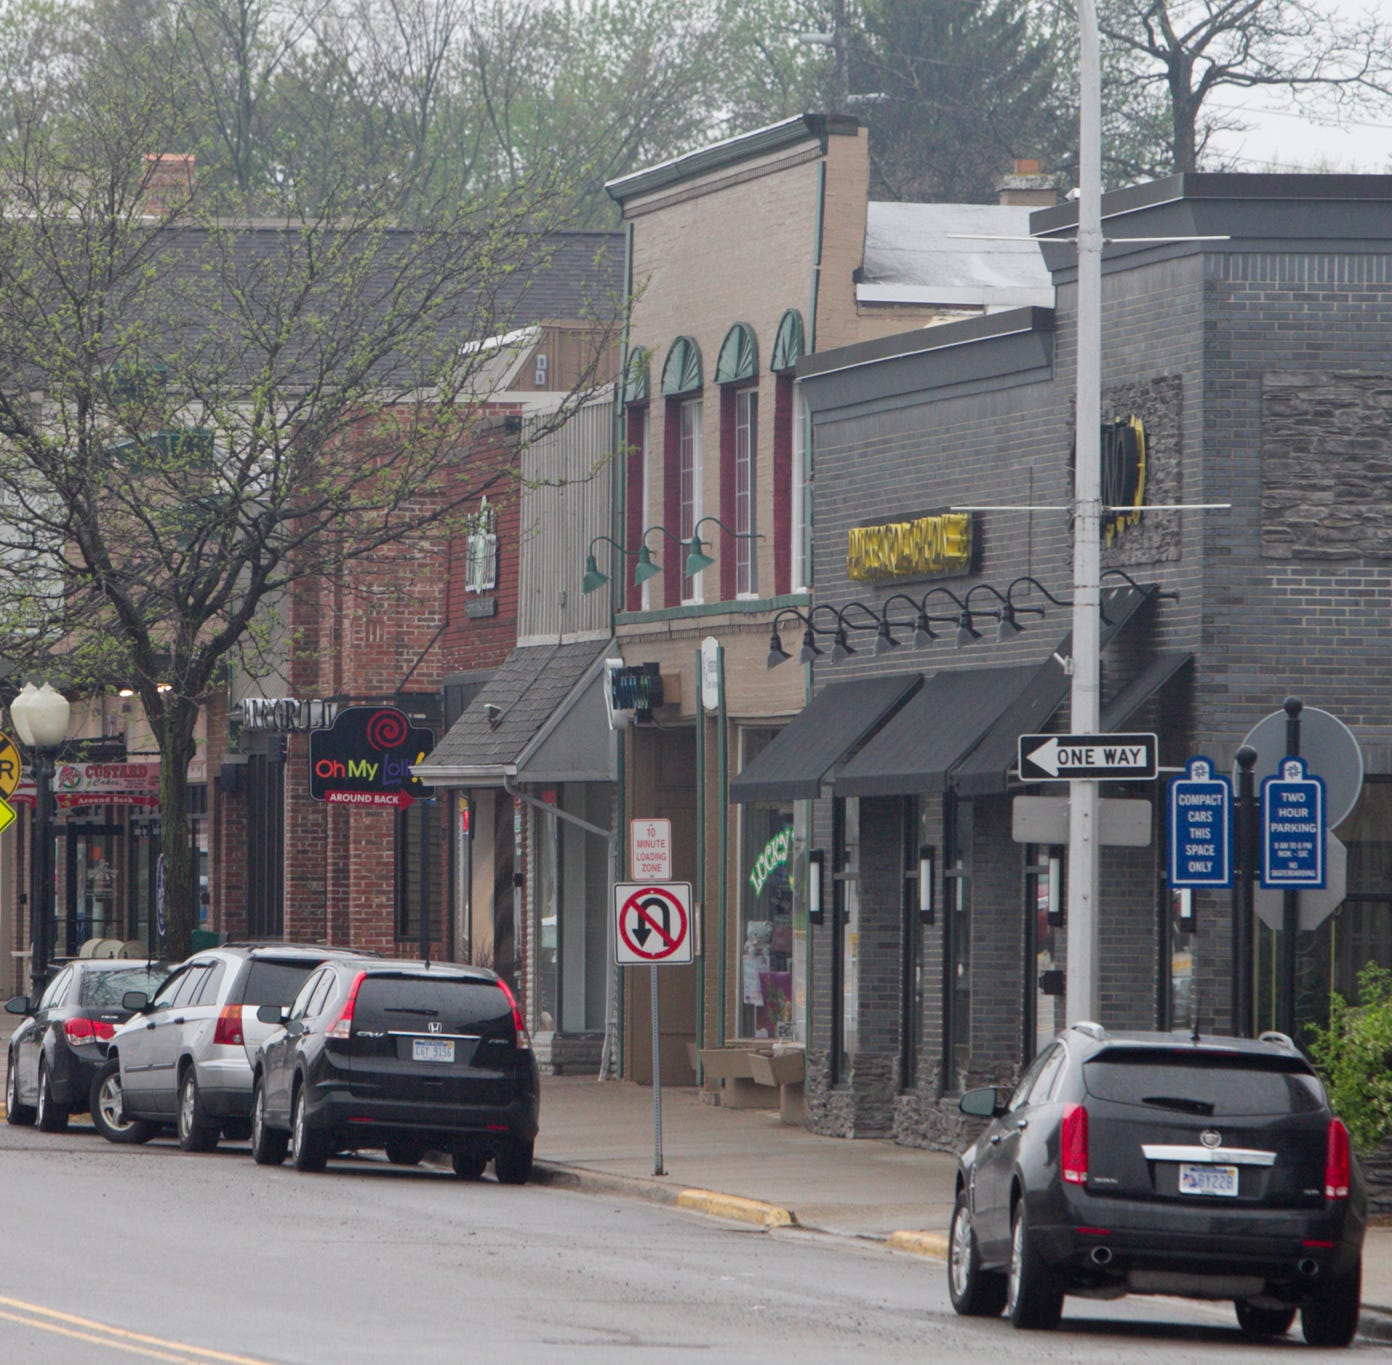 Survey: Most residents don't want paid parking in downtown Brighton